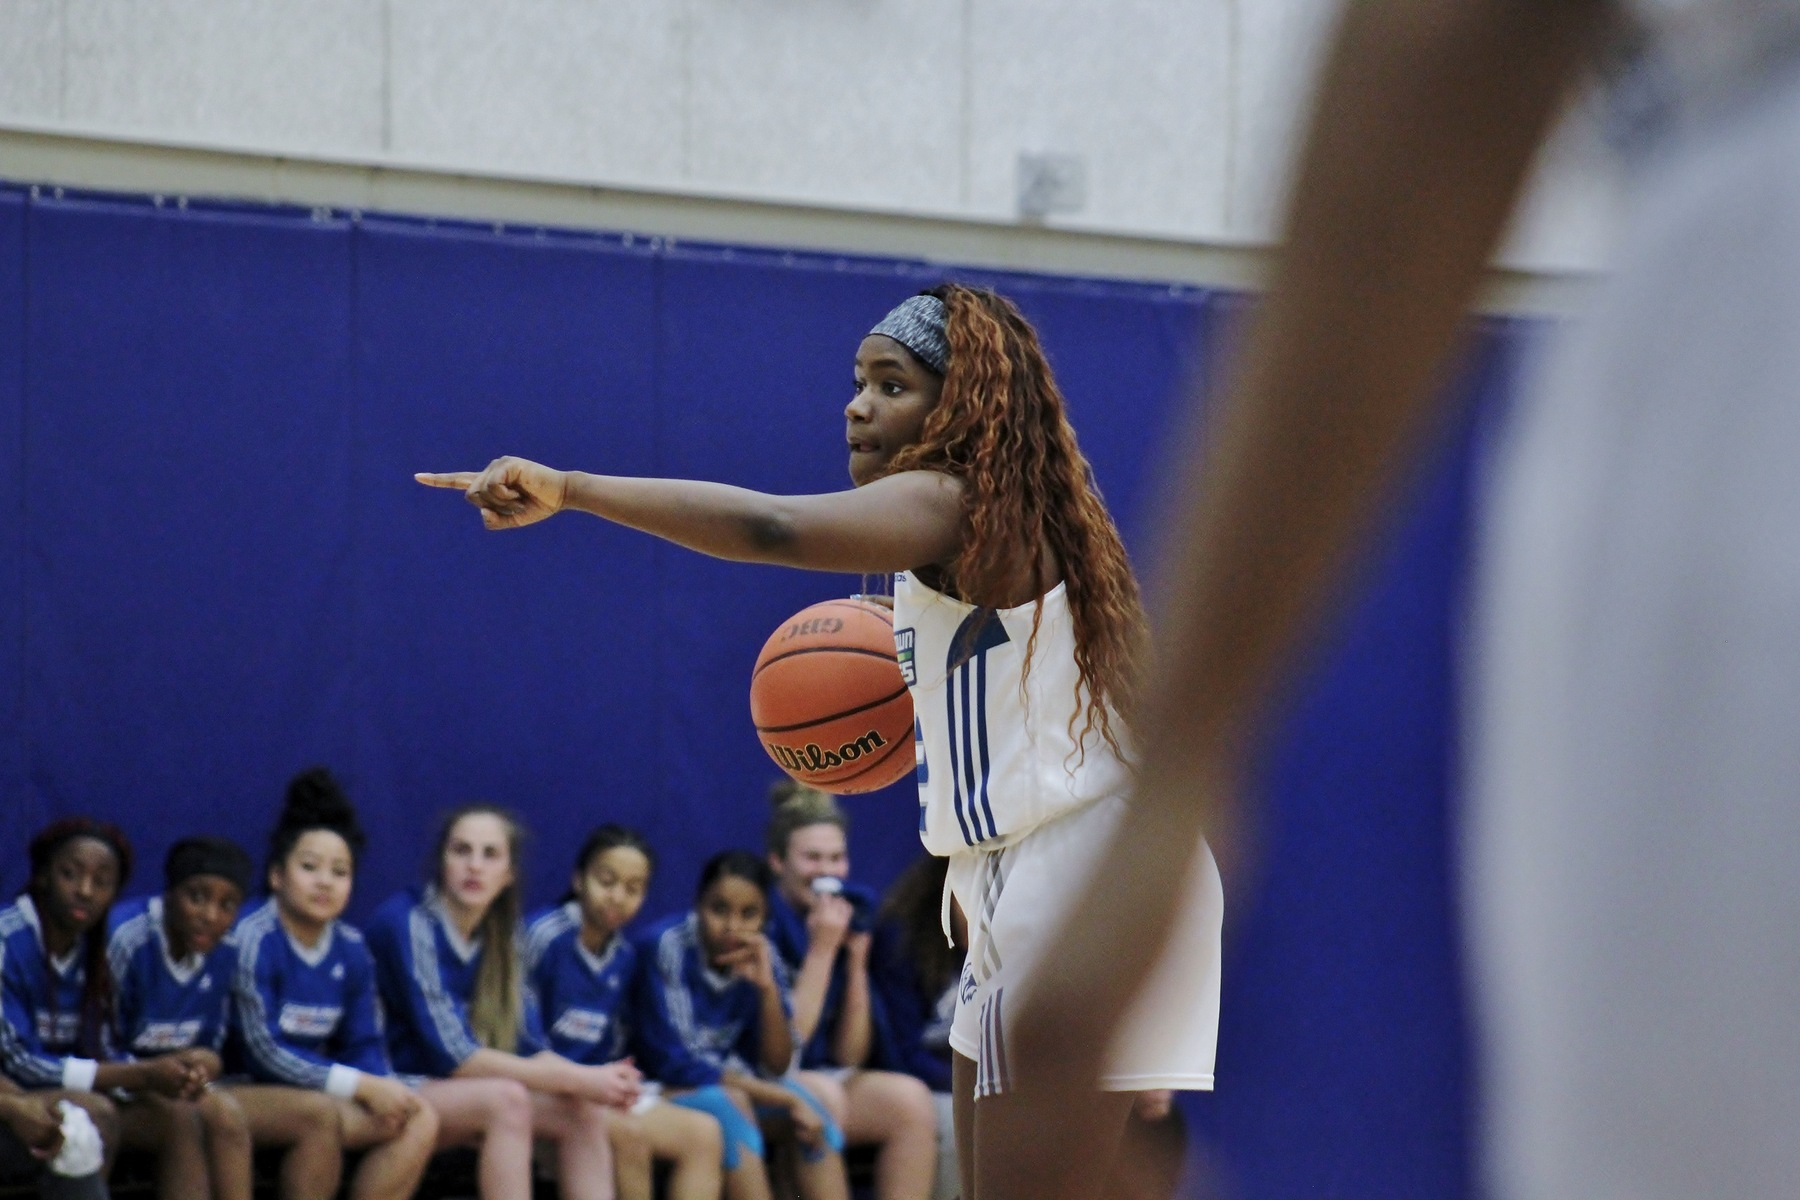 Female basketball player dribbling and pointing